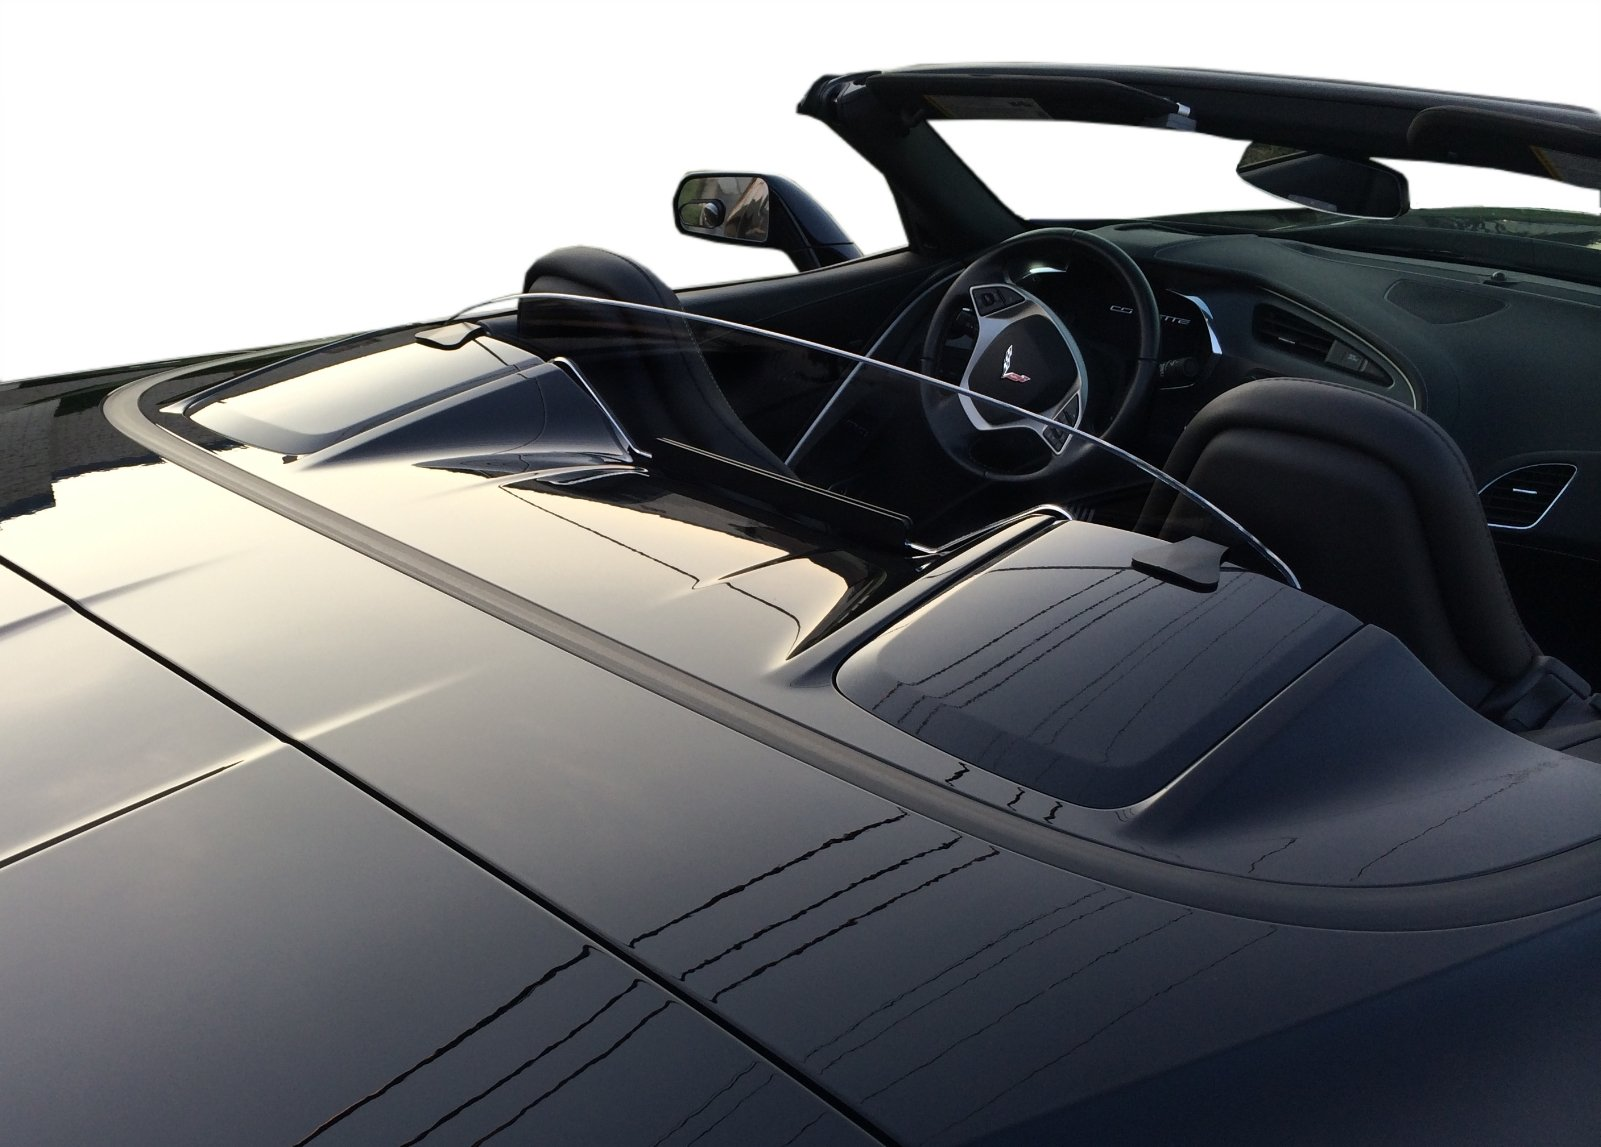 WindRestrictor Convertible Wind Deflector Compatible with 2014-2018 Chevrolet C7 Corvette Stingray - Control air flow, cut down backdraft, wind noise - Patented - Easy Install, Secure Mounting - Clear